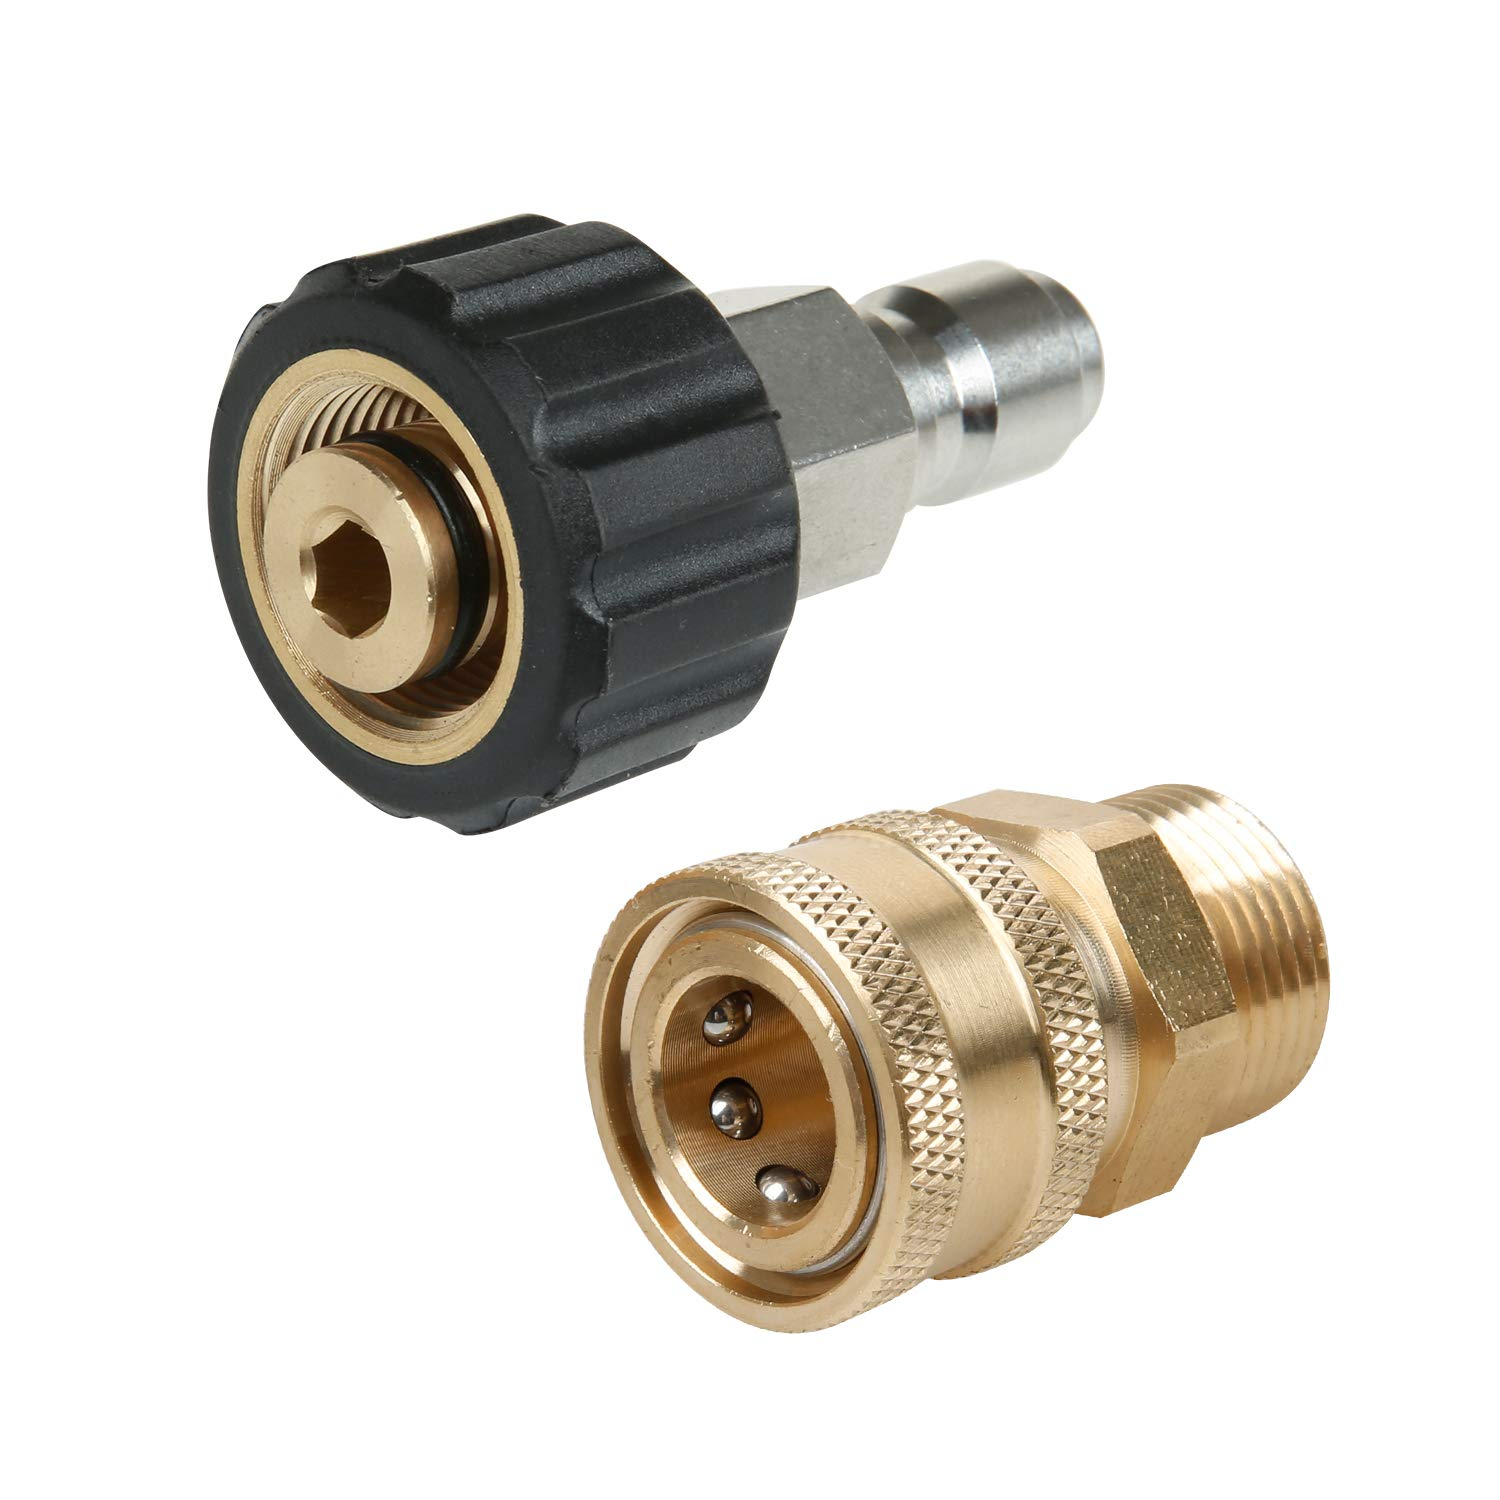 Sooprinse Pressure Washer Adapter Set,Quick Connect Kit,5000 PSI, M22-14mm Swivel to M22 Metric Fitting by Sooprinse